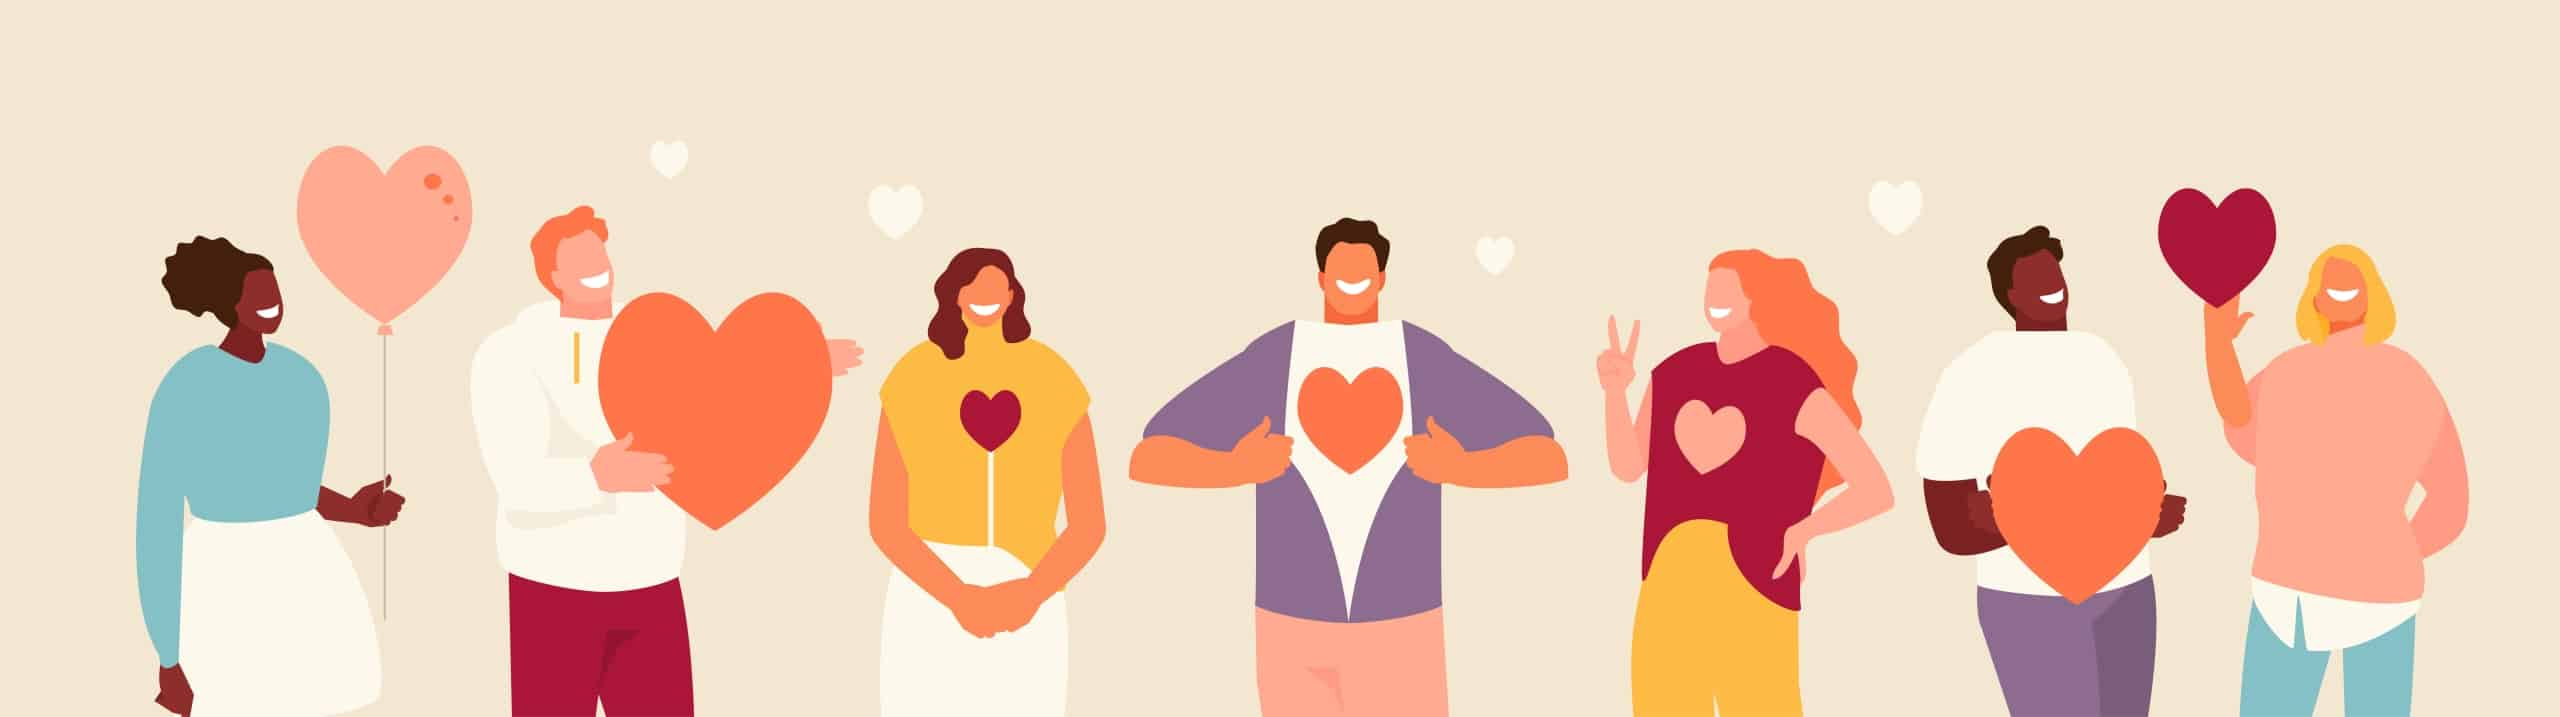 Illustrated people holding heart shape in hand